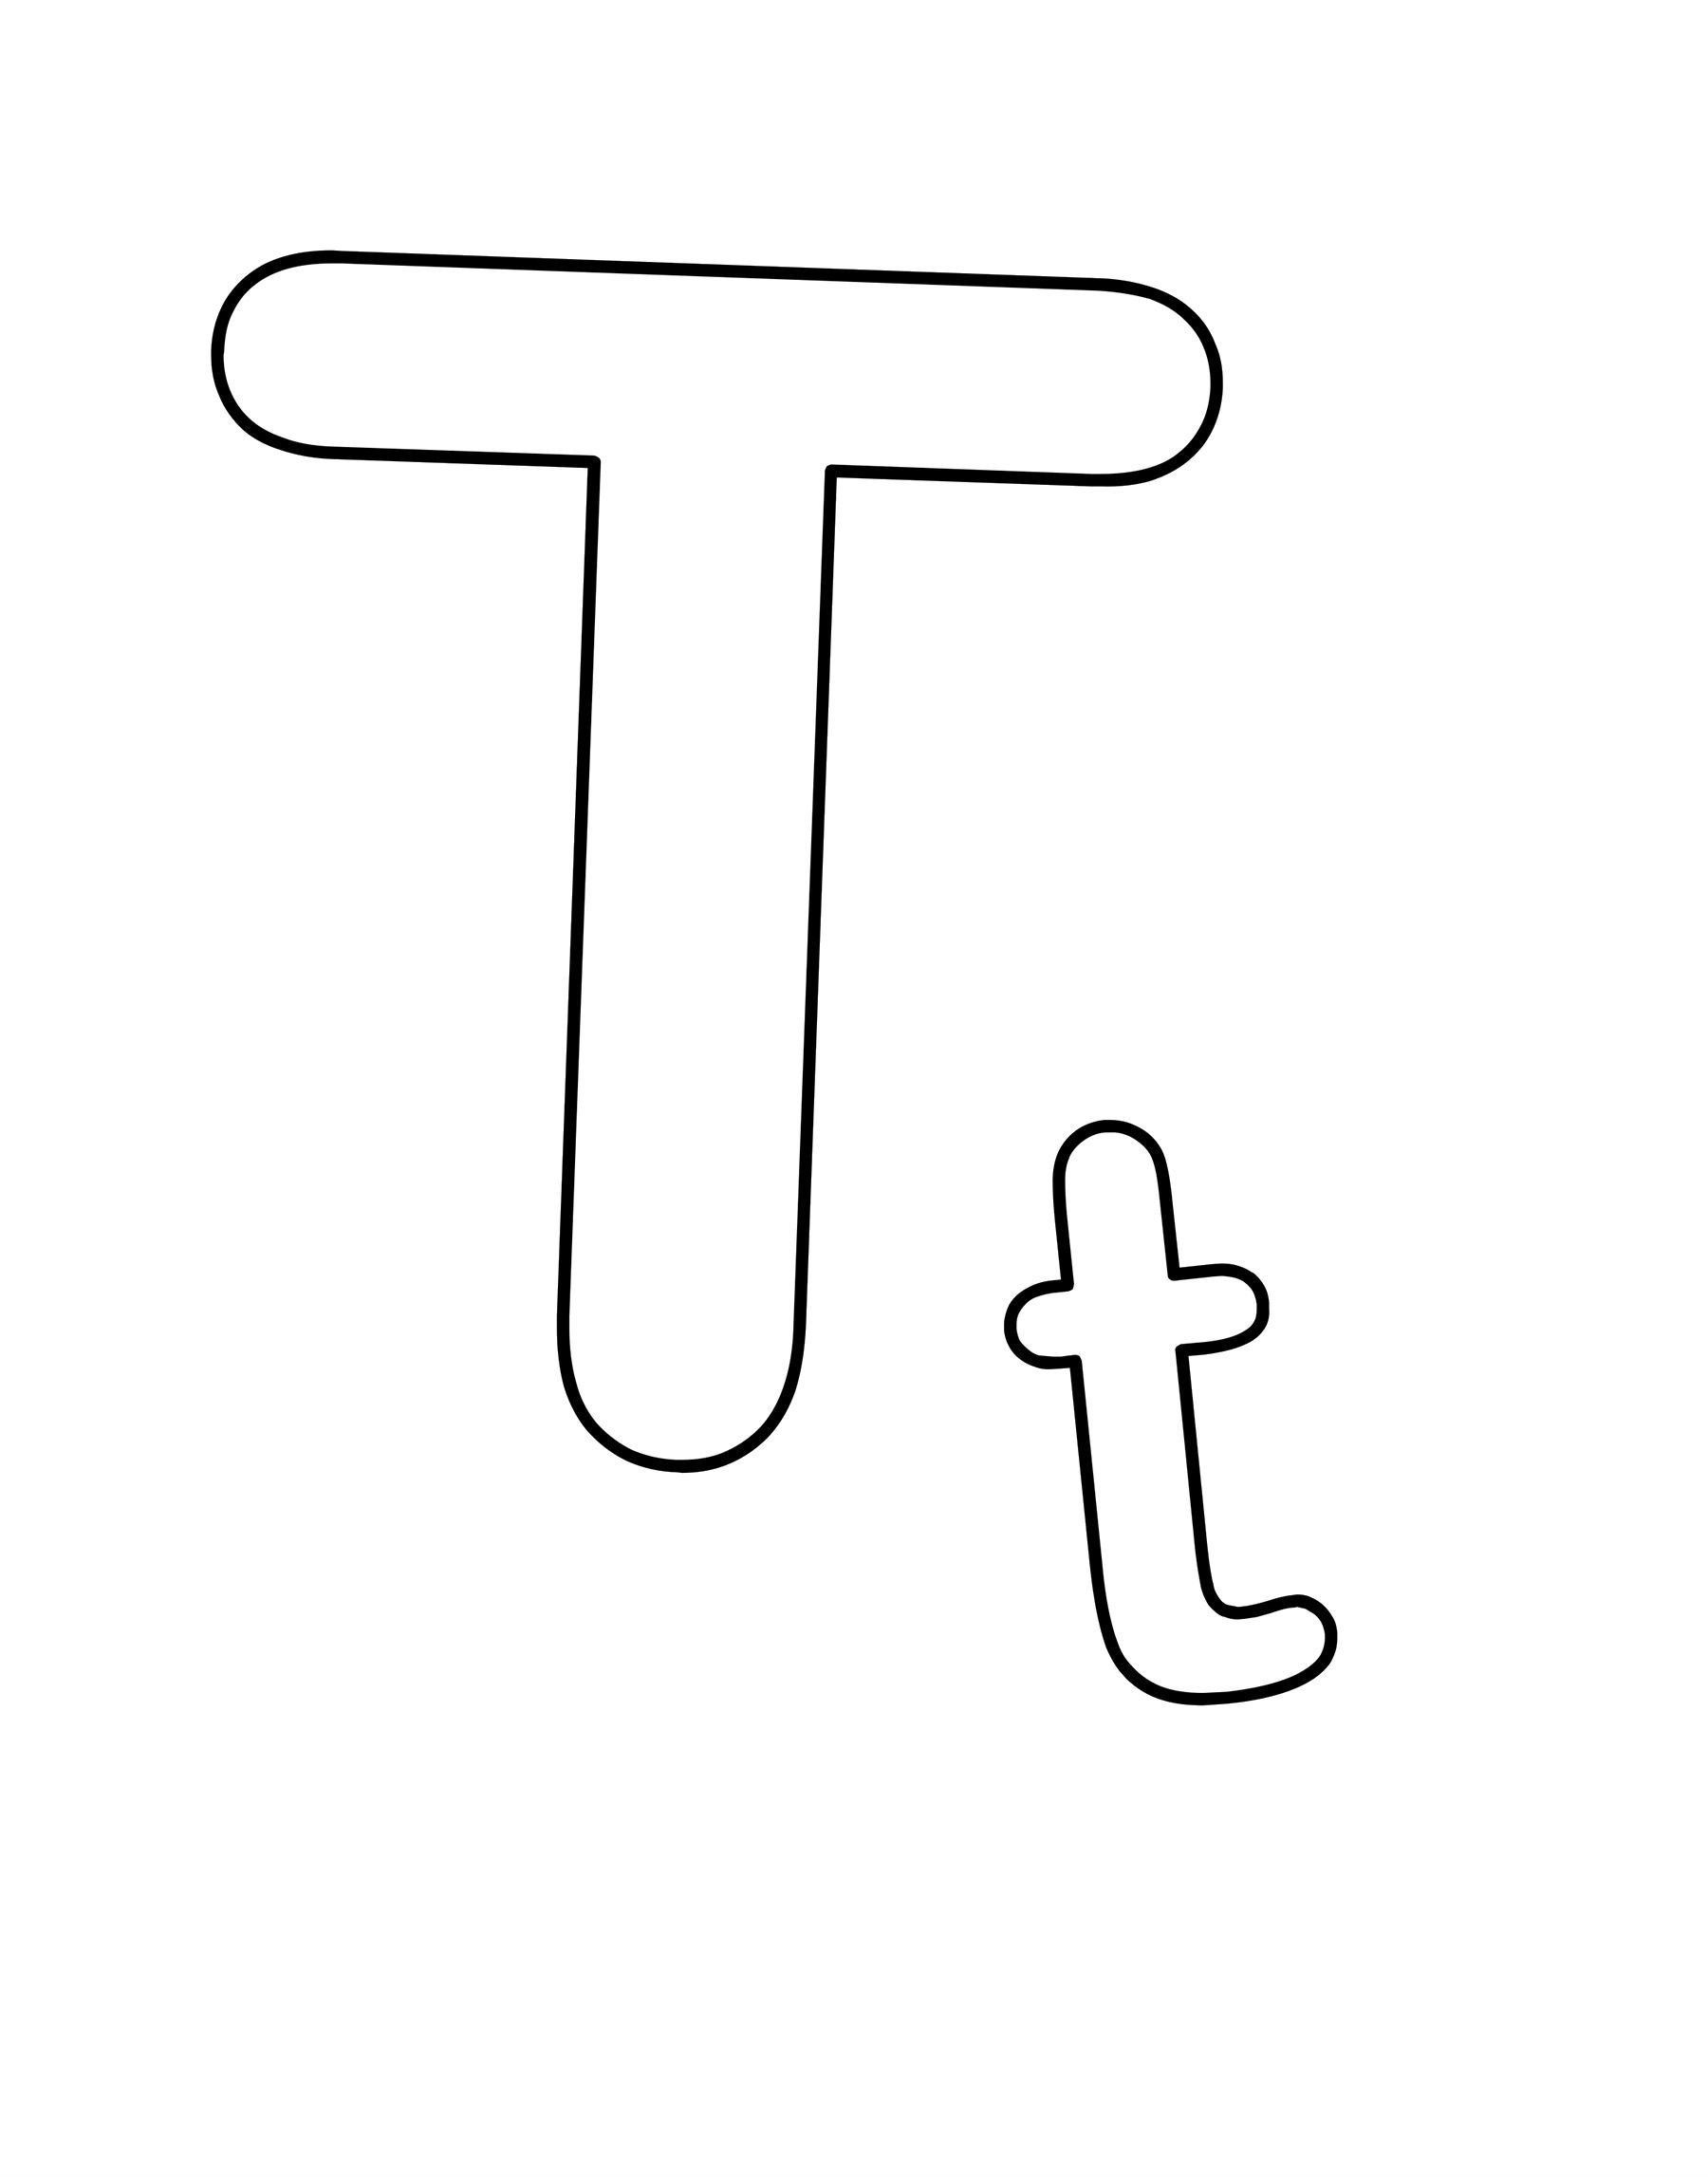 Trains Alphabet Letter T Large With Small T Coloring Pages For Kids Fcj Printable Trains Alphabet Coloring Pages For Kids